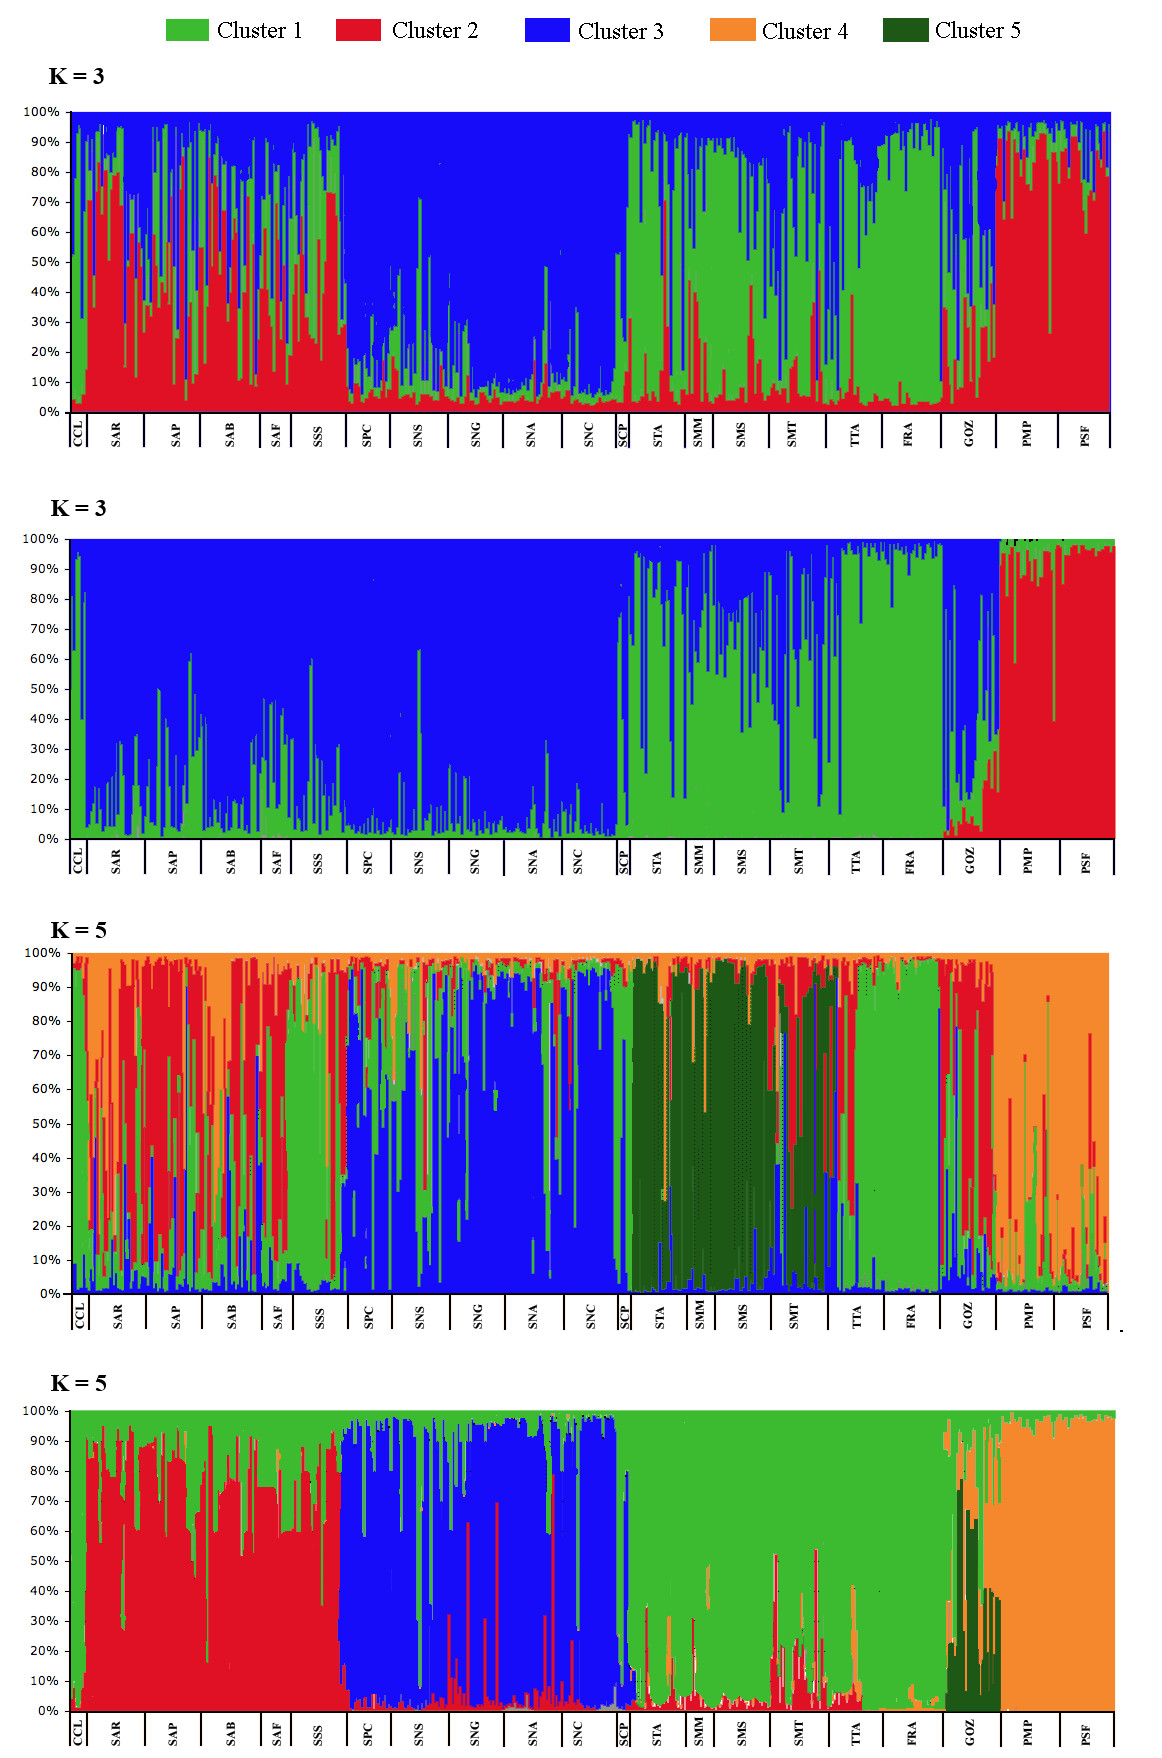 http://static-content.springer.com/image/art%3A10.1186%2F1742-9994-10-21/MediaObjects/12983_2012_Article_236_Fig3_HTML.jpg